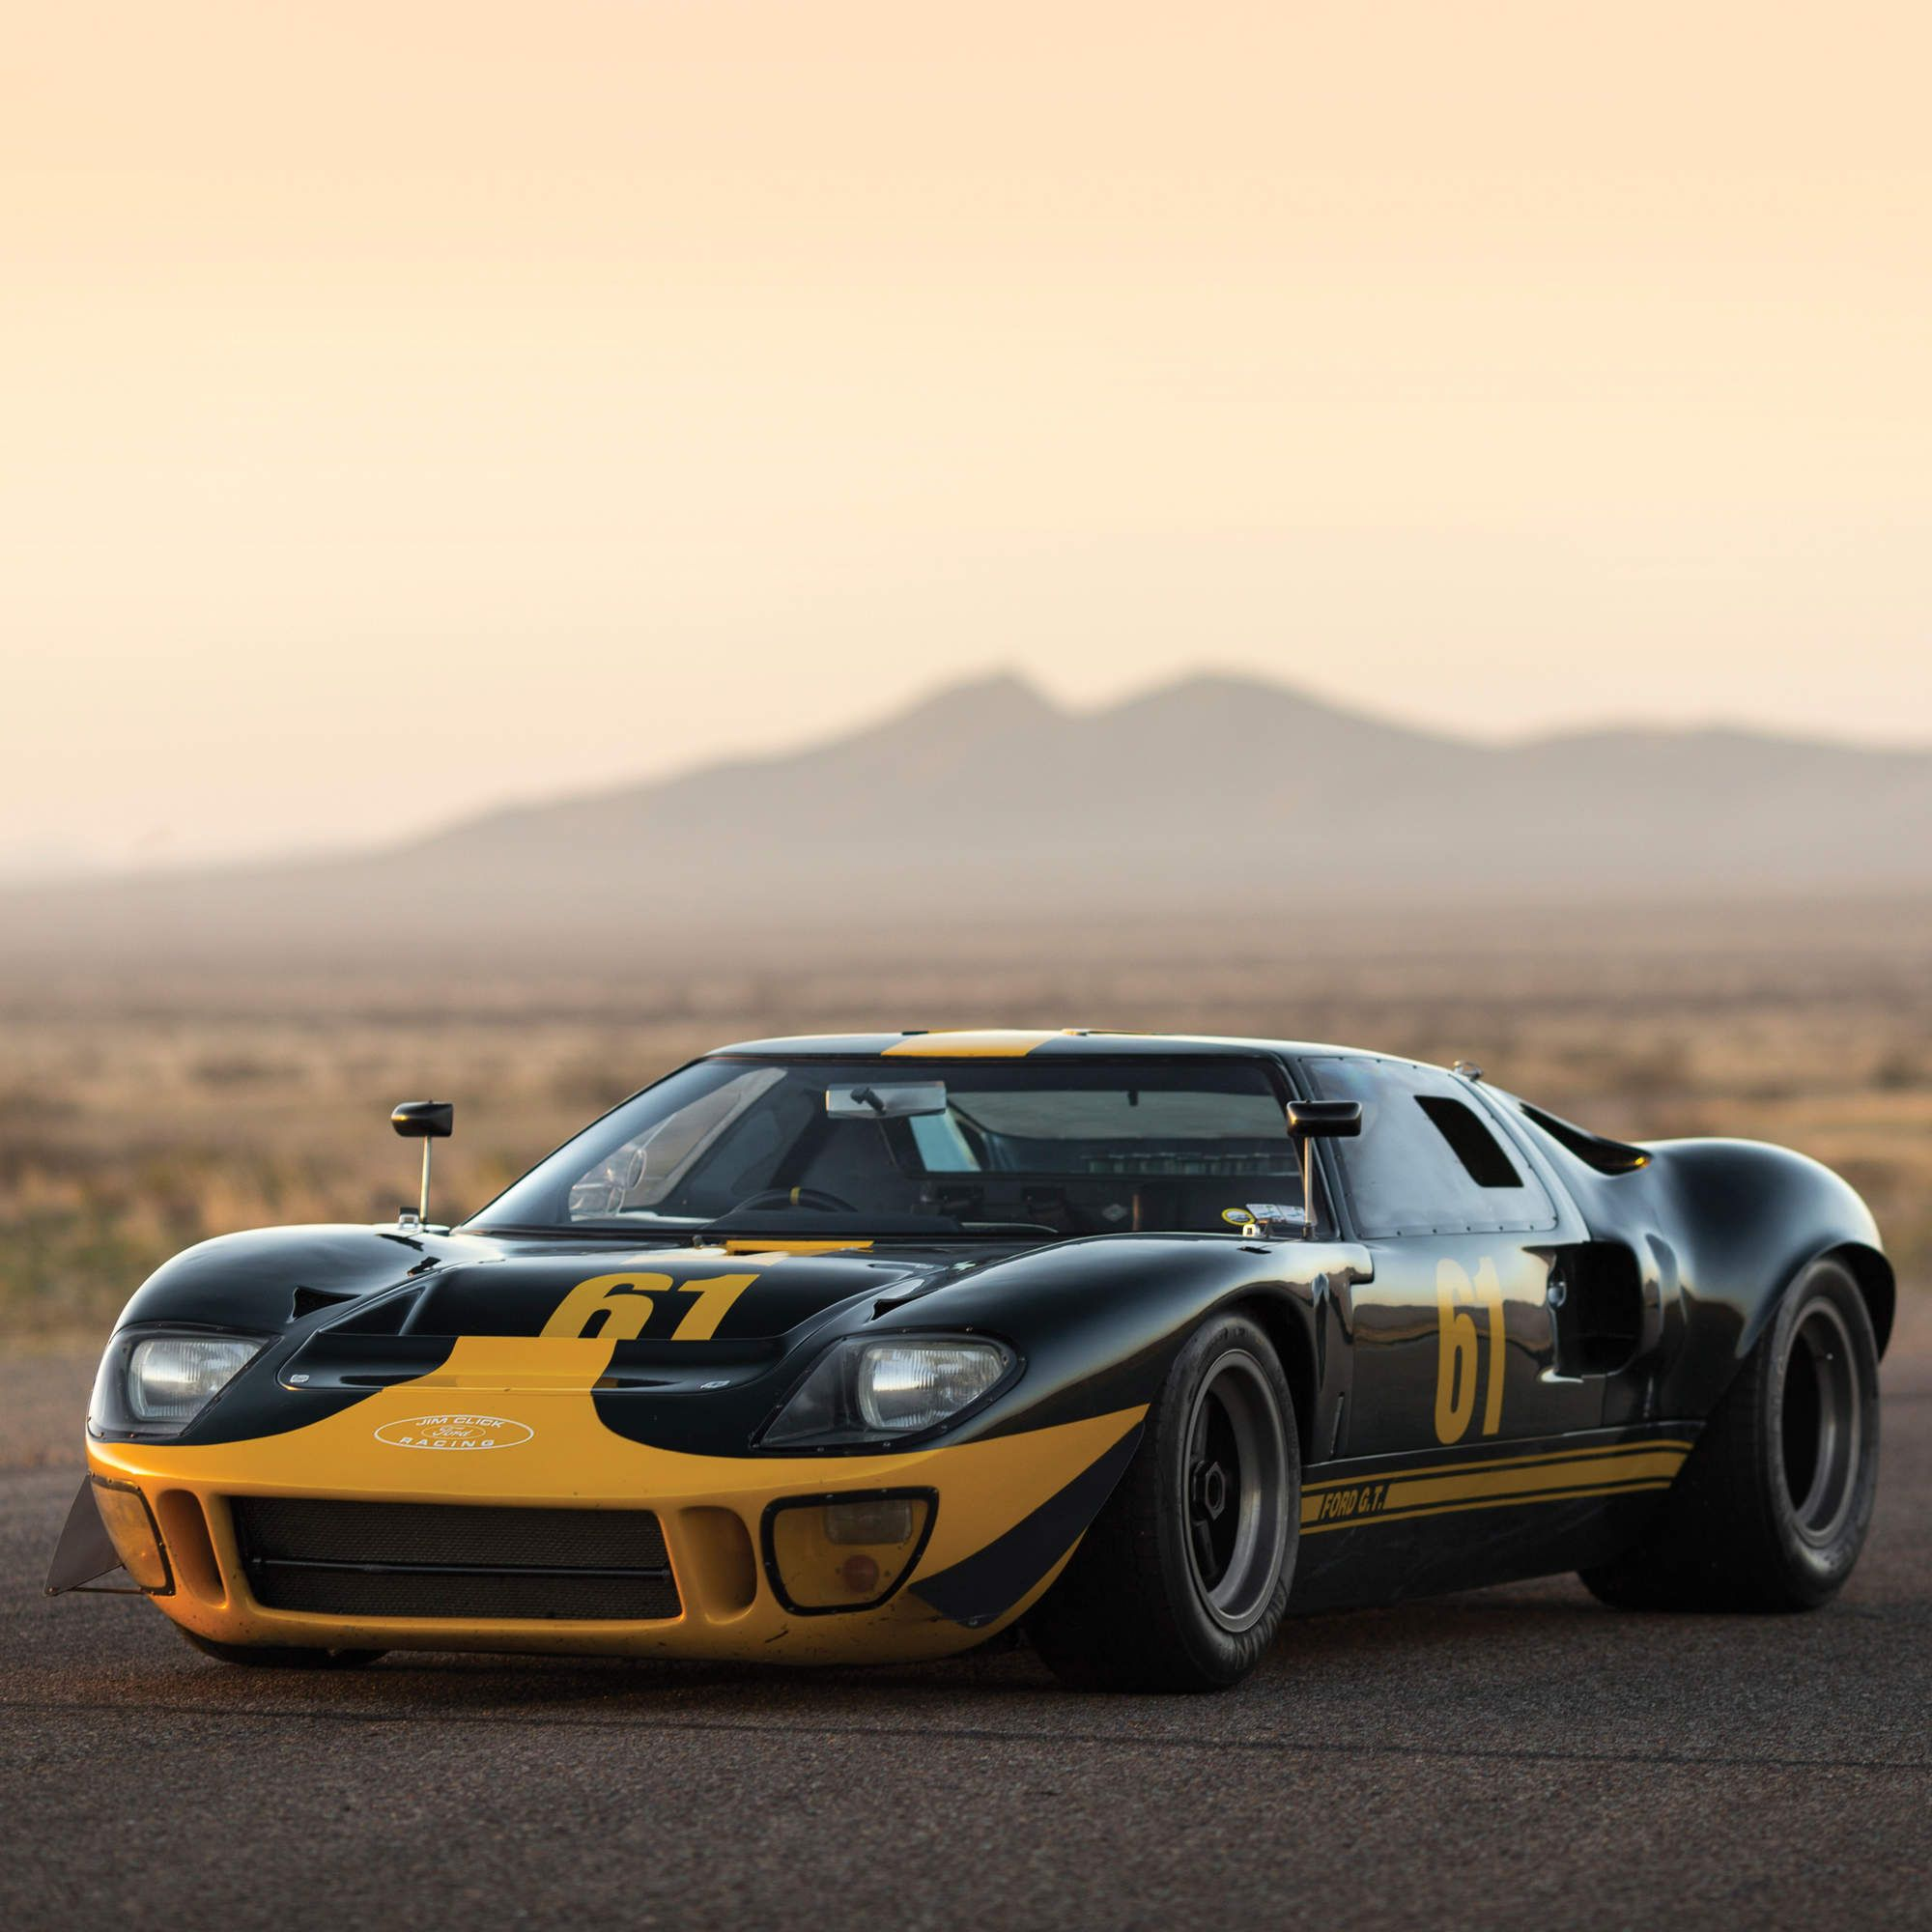 Ford Gt Estimated Price   With All Of The Racing Success Of The Gt Its A Bit Easy To Forget That Ford